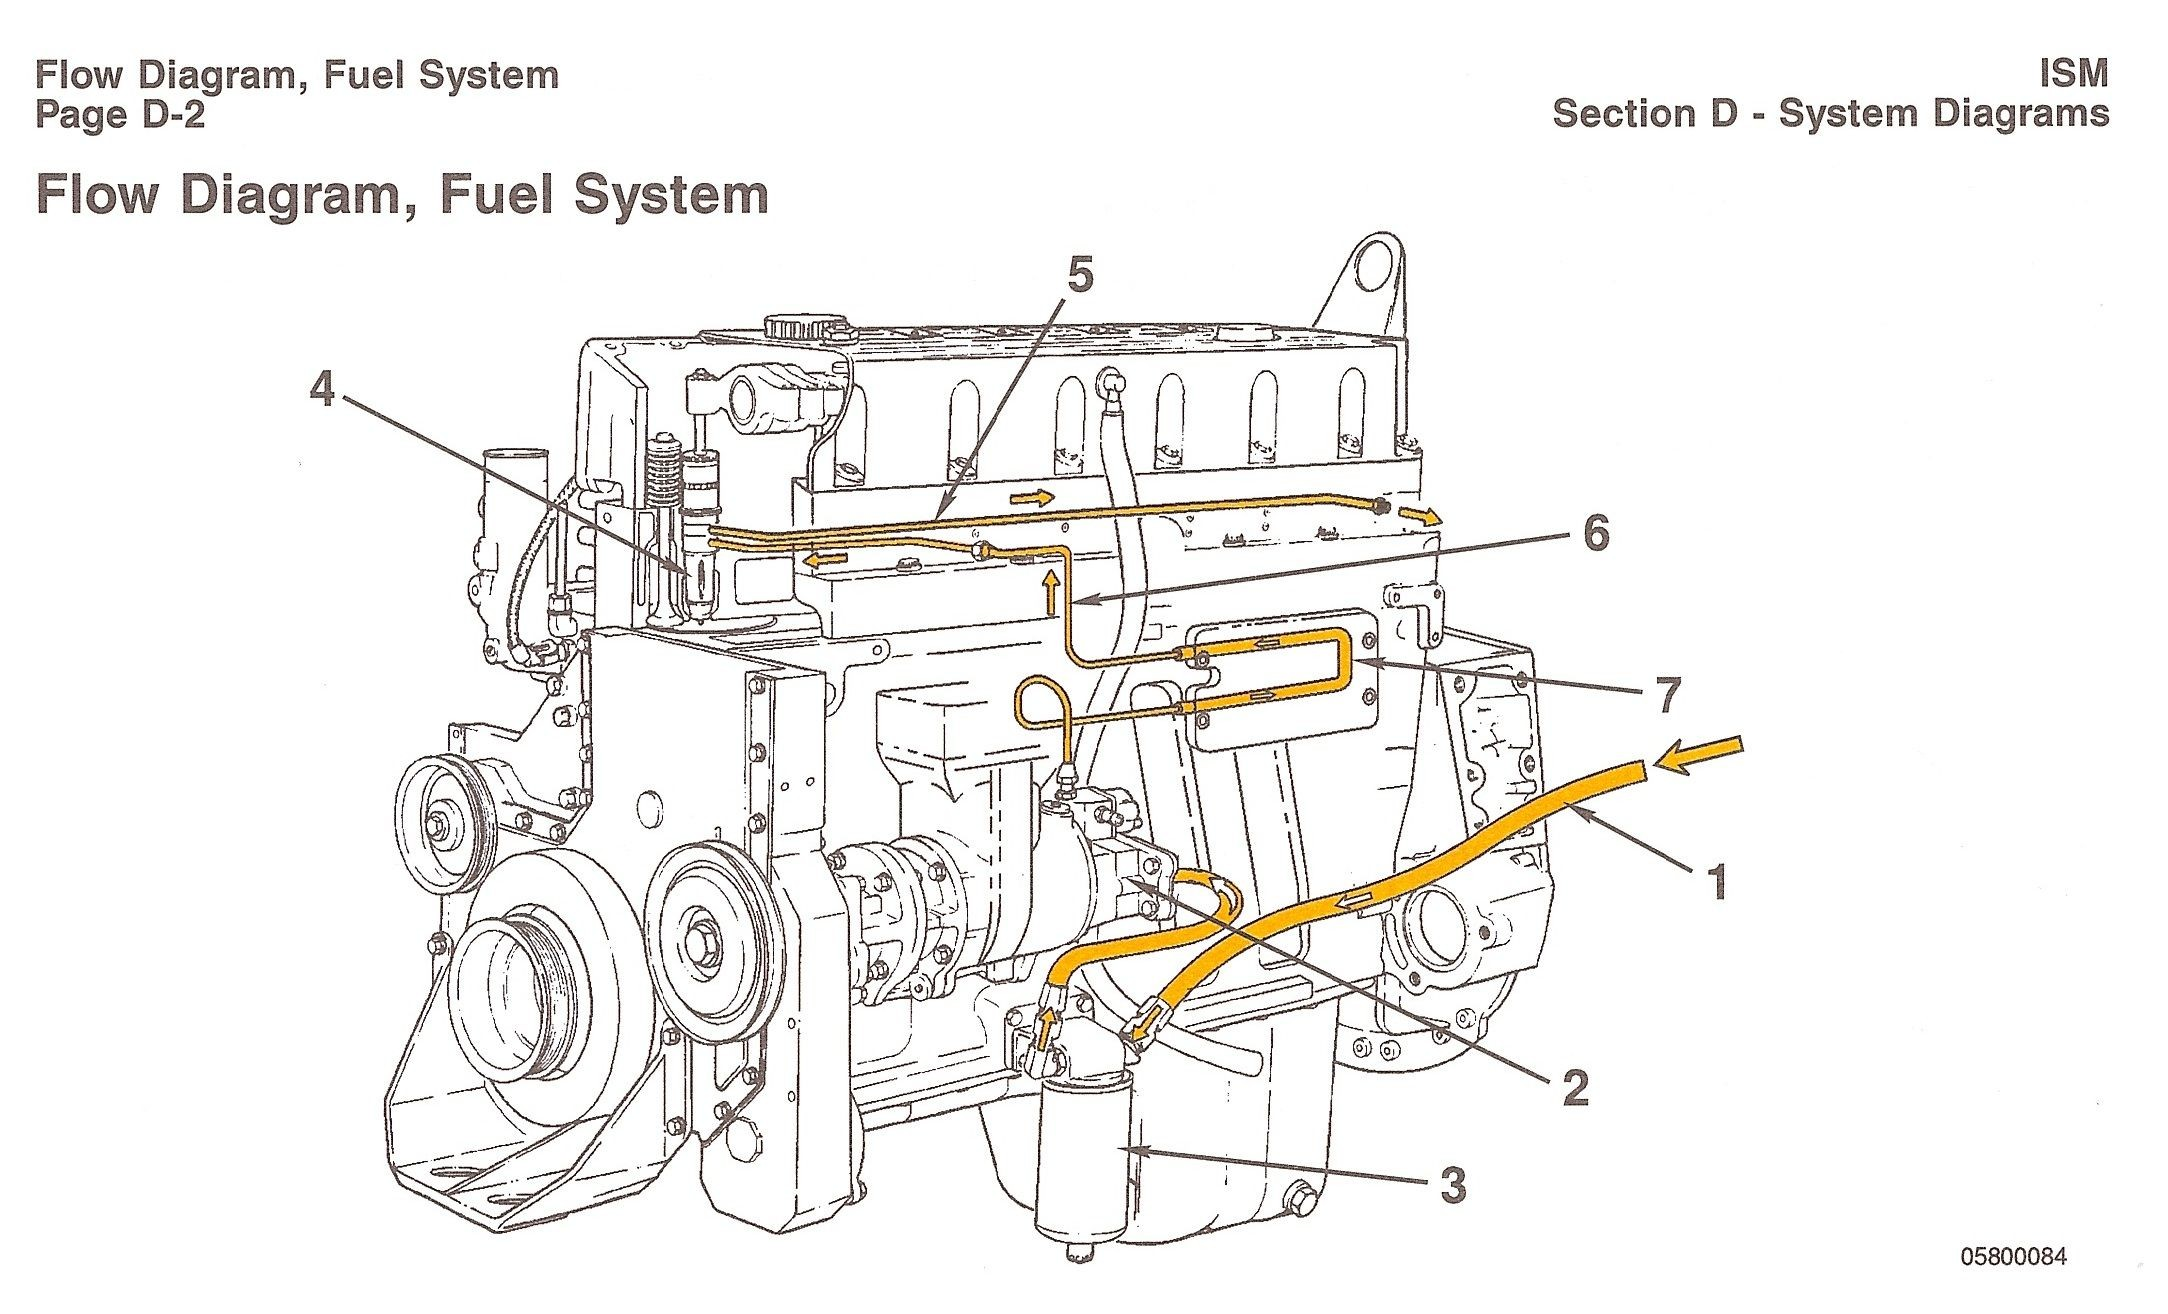 Sel Engine Fuel System Diagram on electrical junction box wiring diagram, engine exhaust system diagram, engine fuel flow diagram, engine oil leak diagram, engine oil system diagram, engine oiling system diagram, engine electrical system diagram, engine lubrication system diagram, engine cooling system diagram,